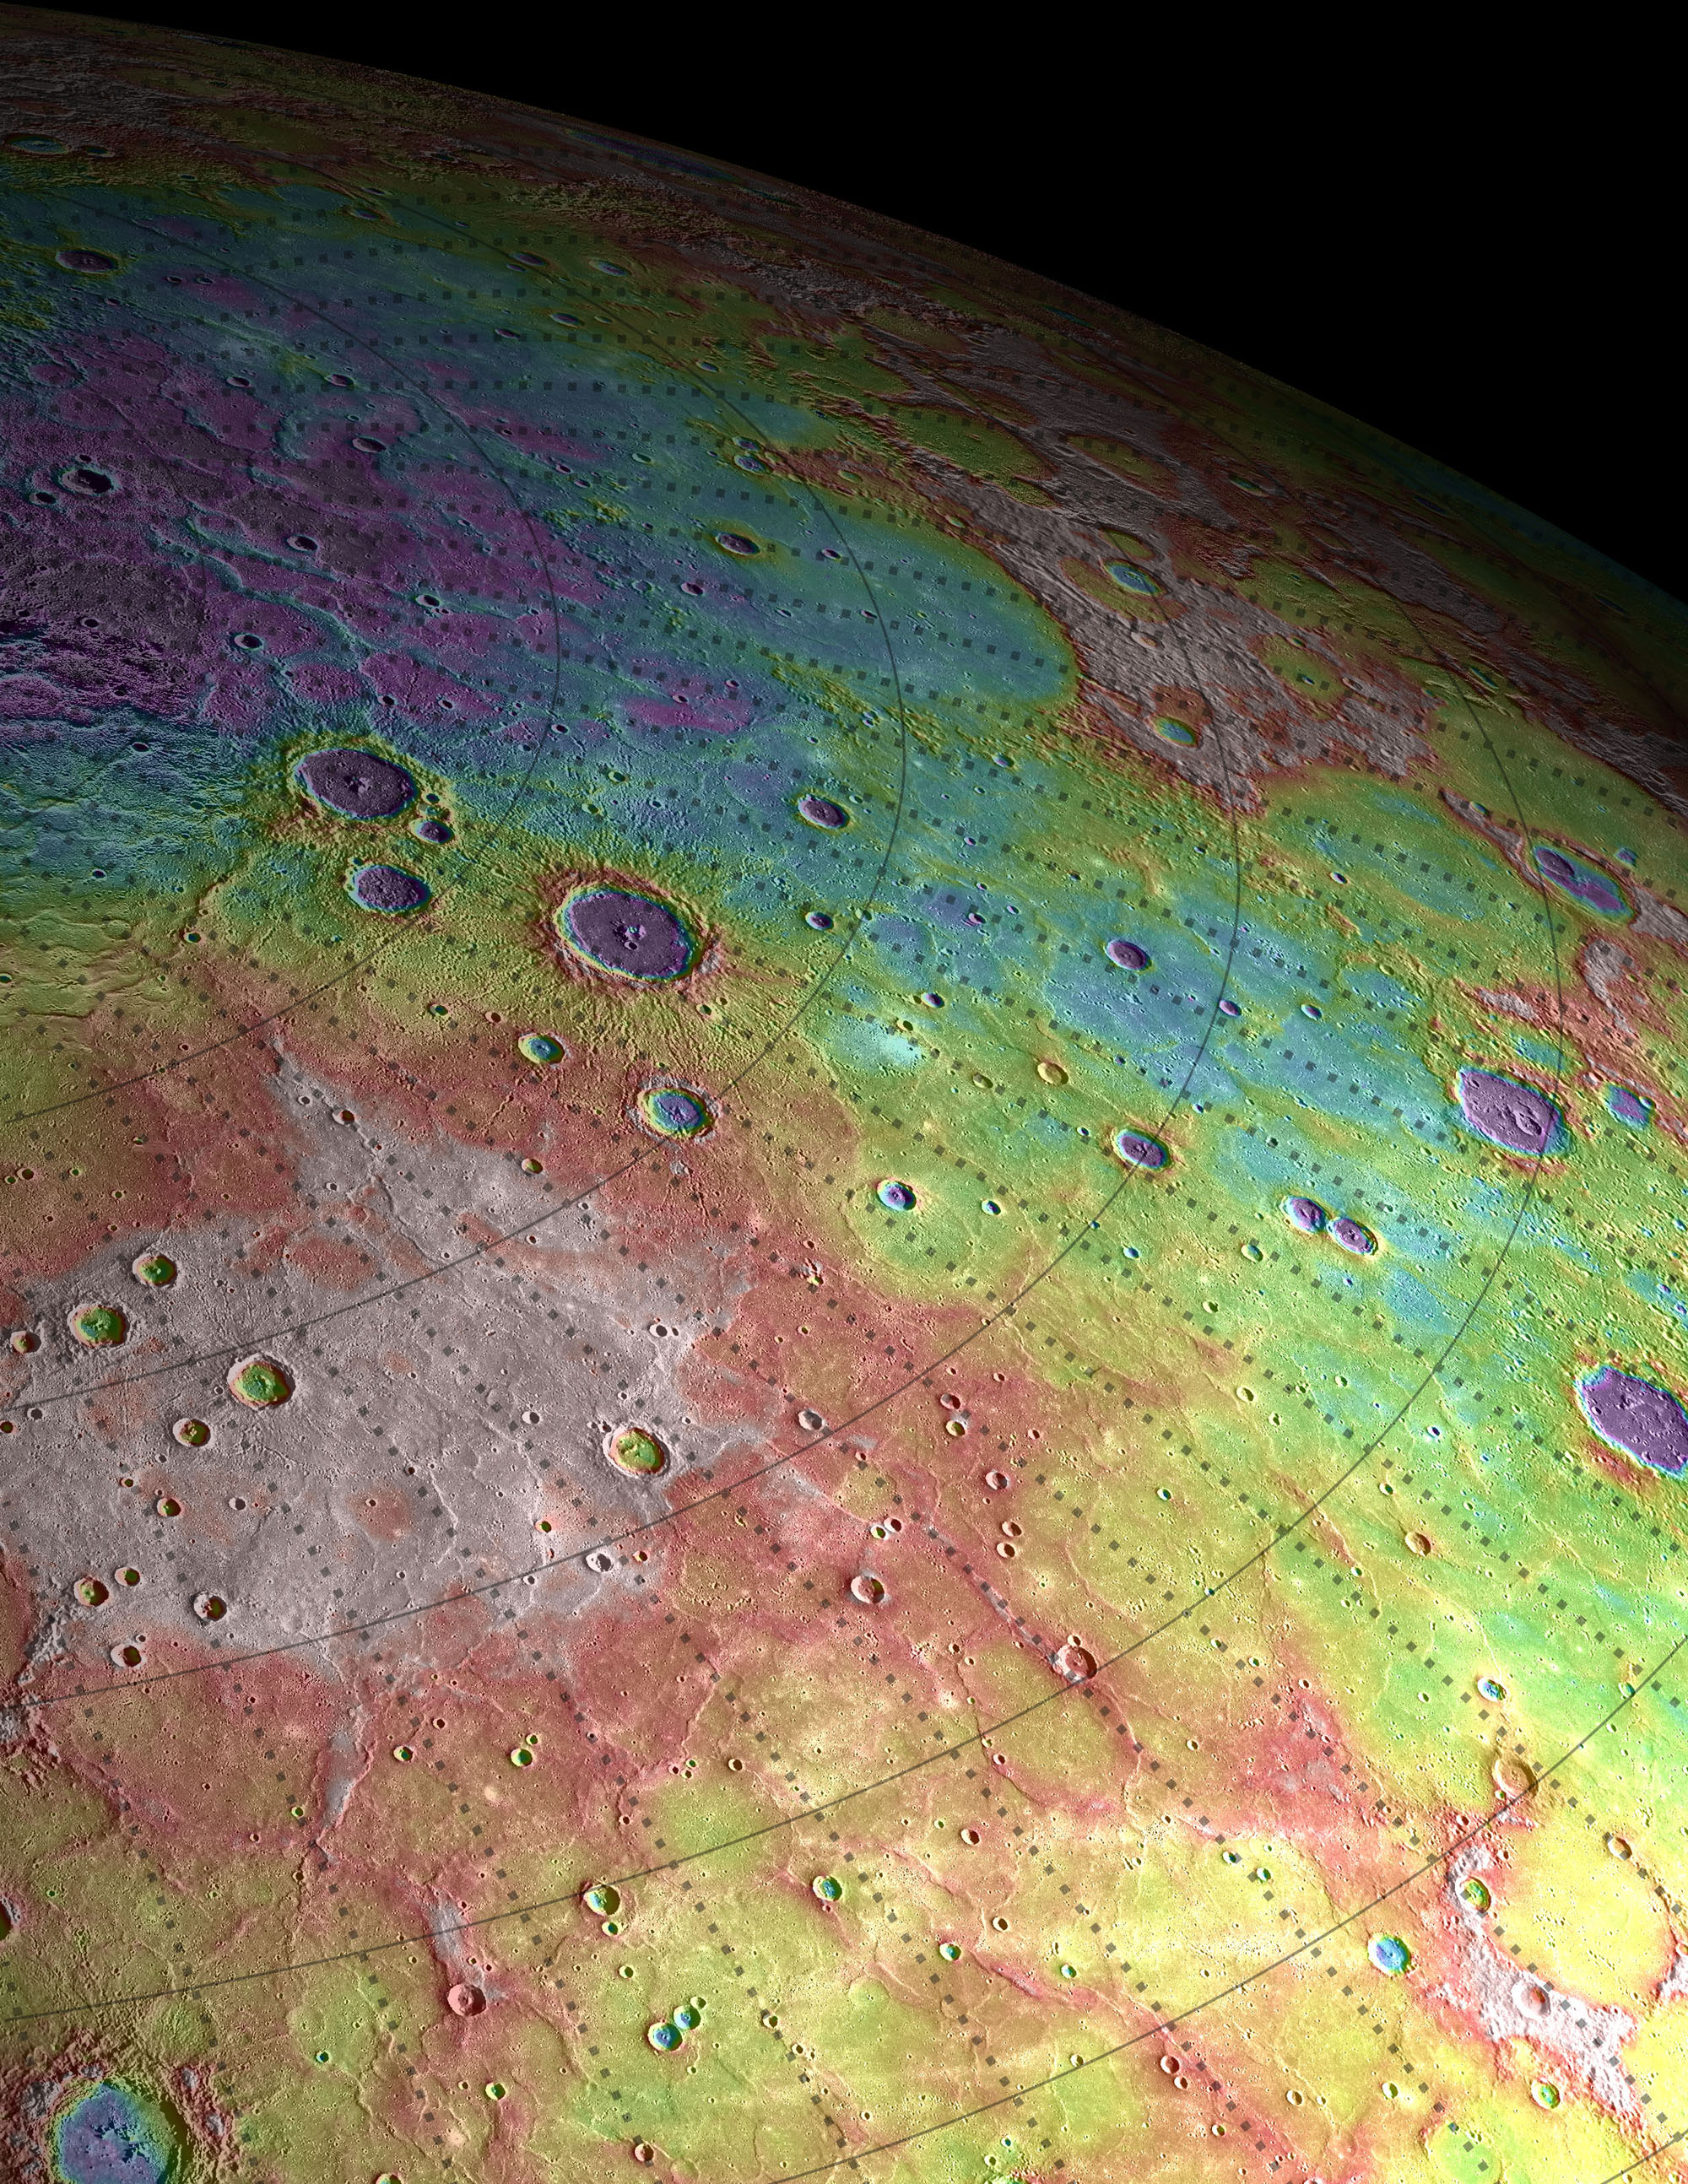 A View of Mercury's High Northern Plains